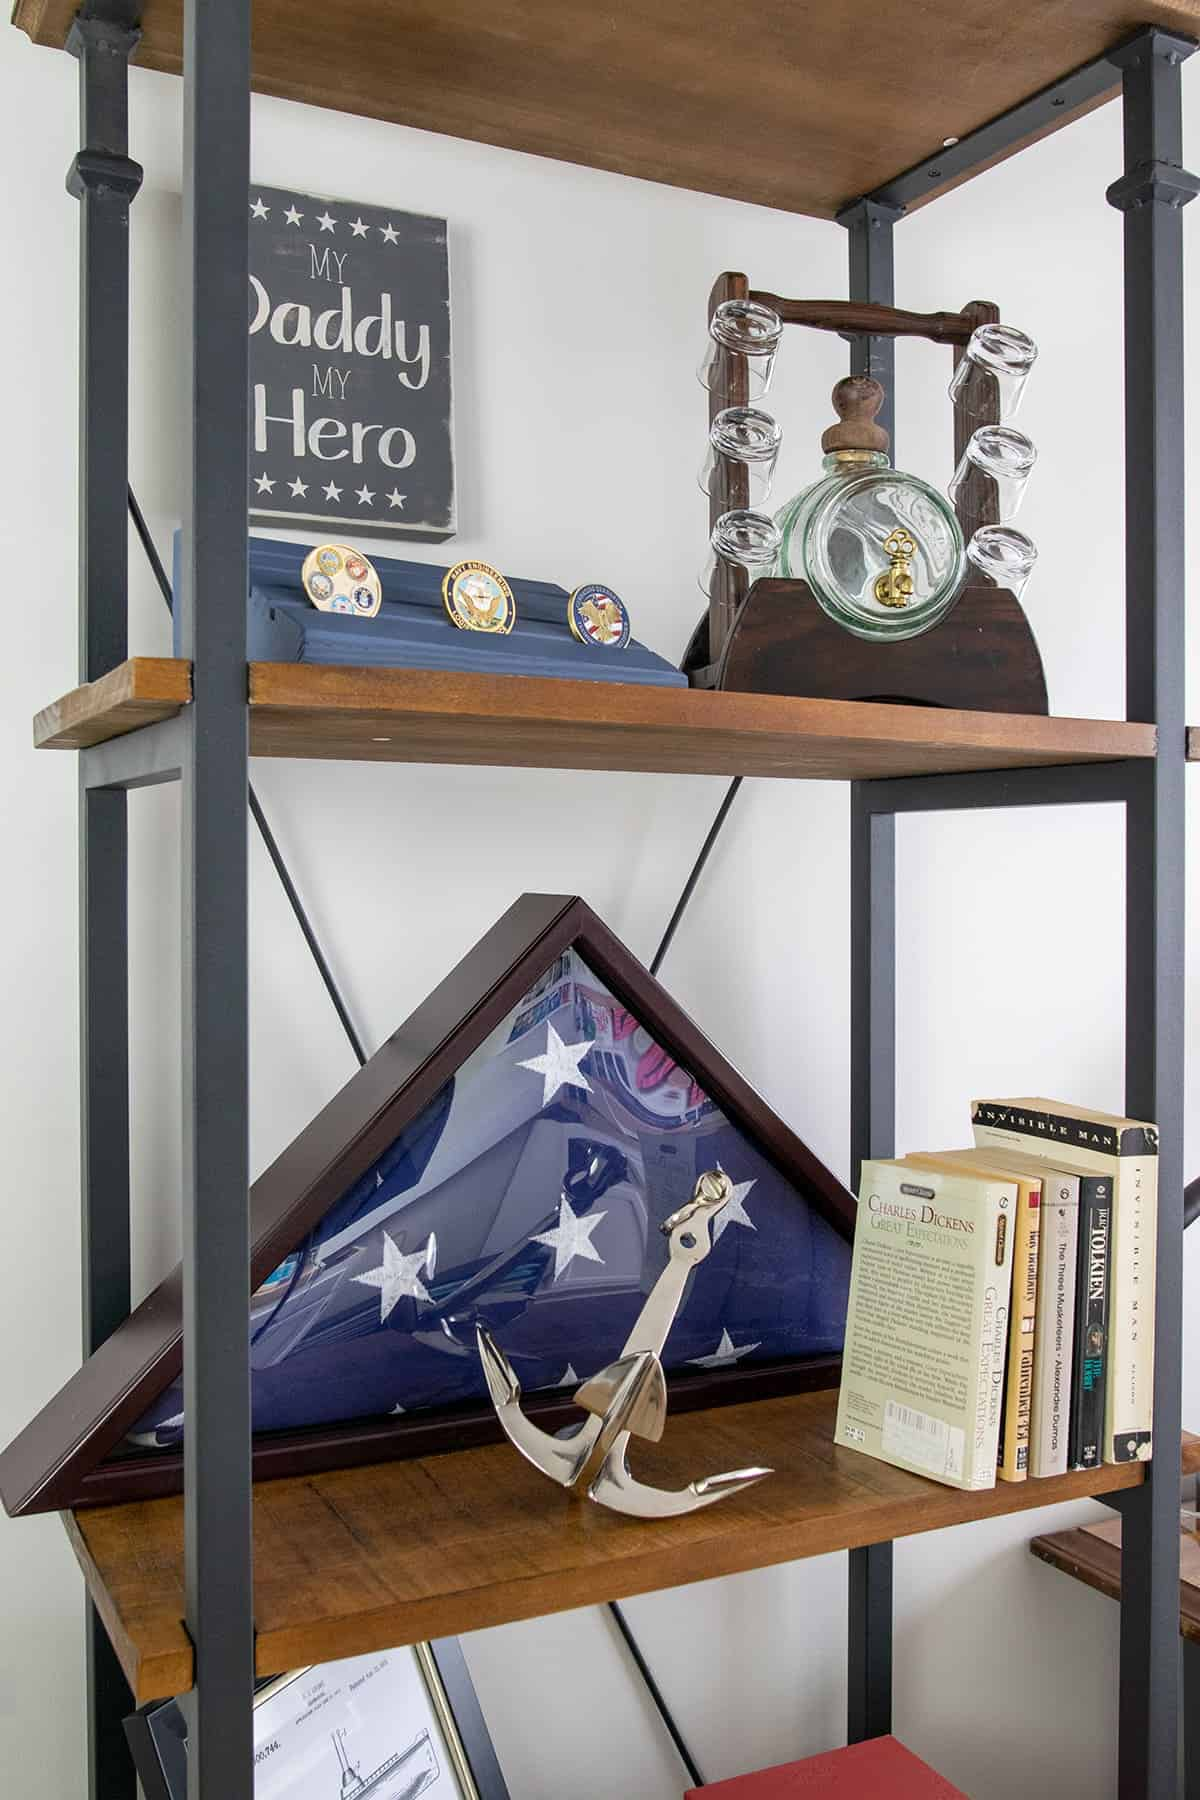 Industrial looking wood and black metal office shelf with patriotic decor and books.